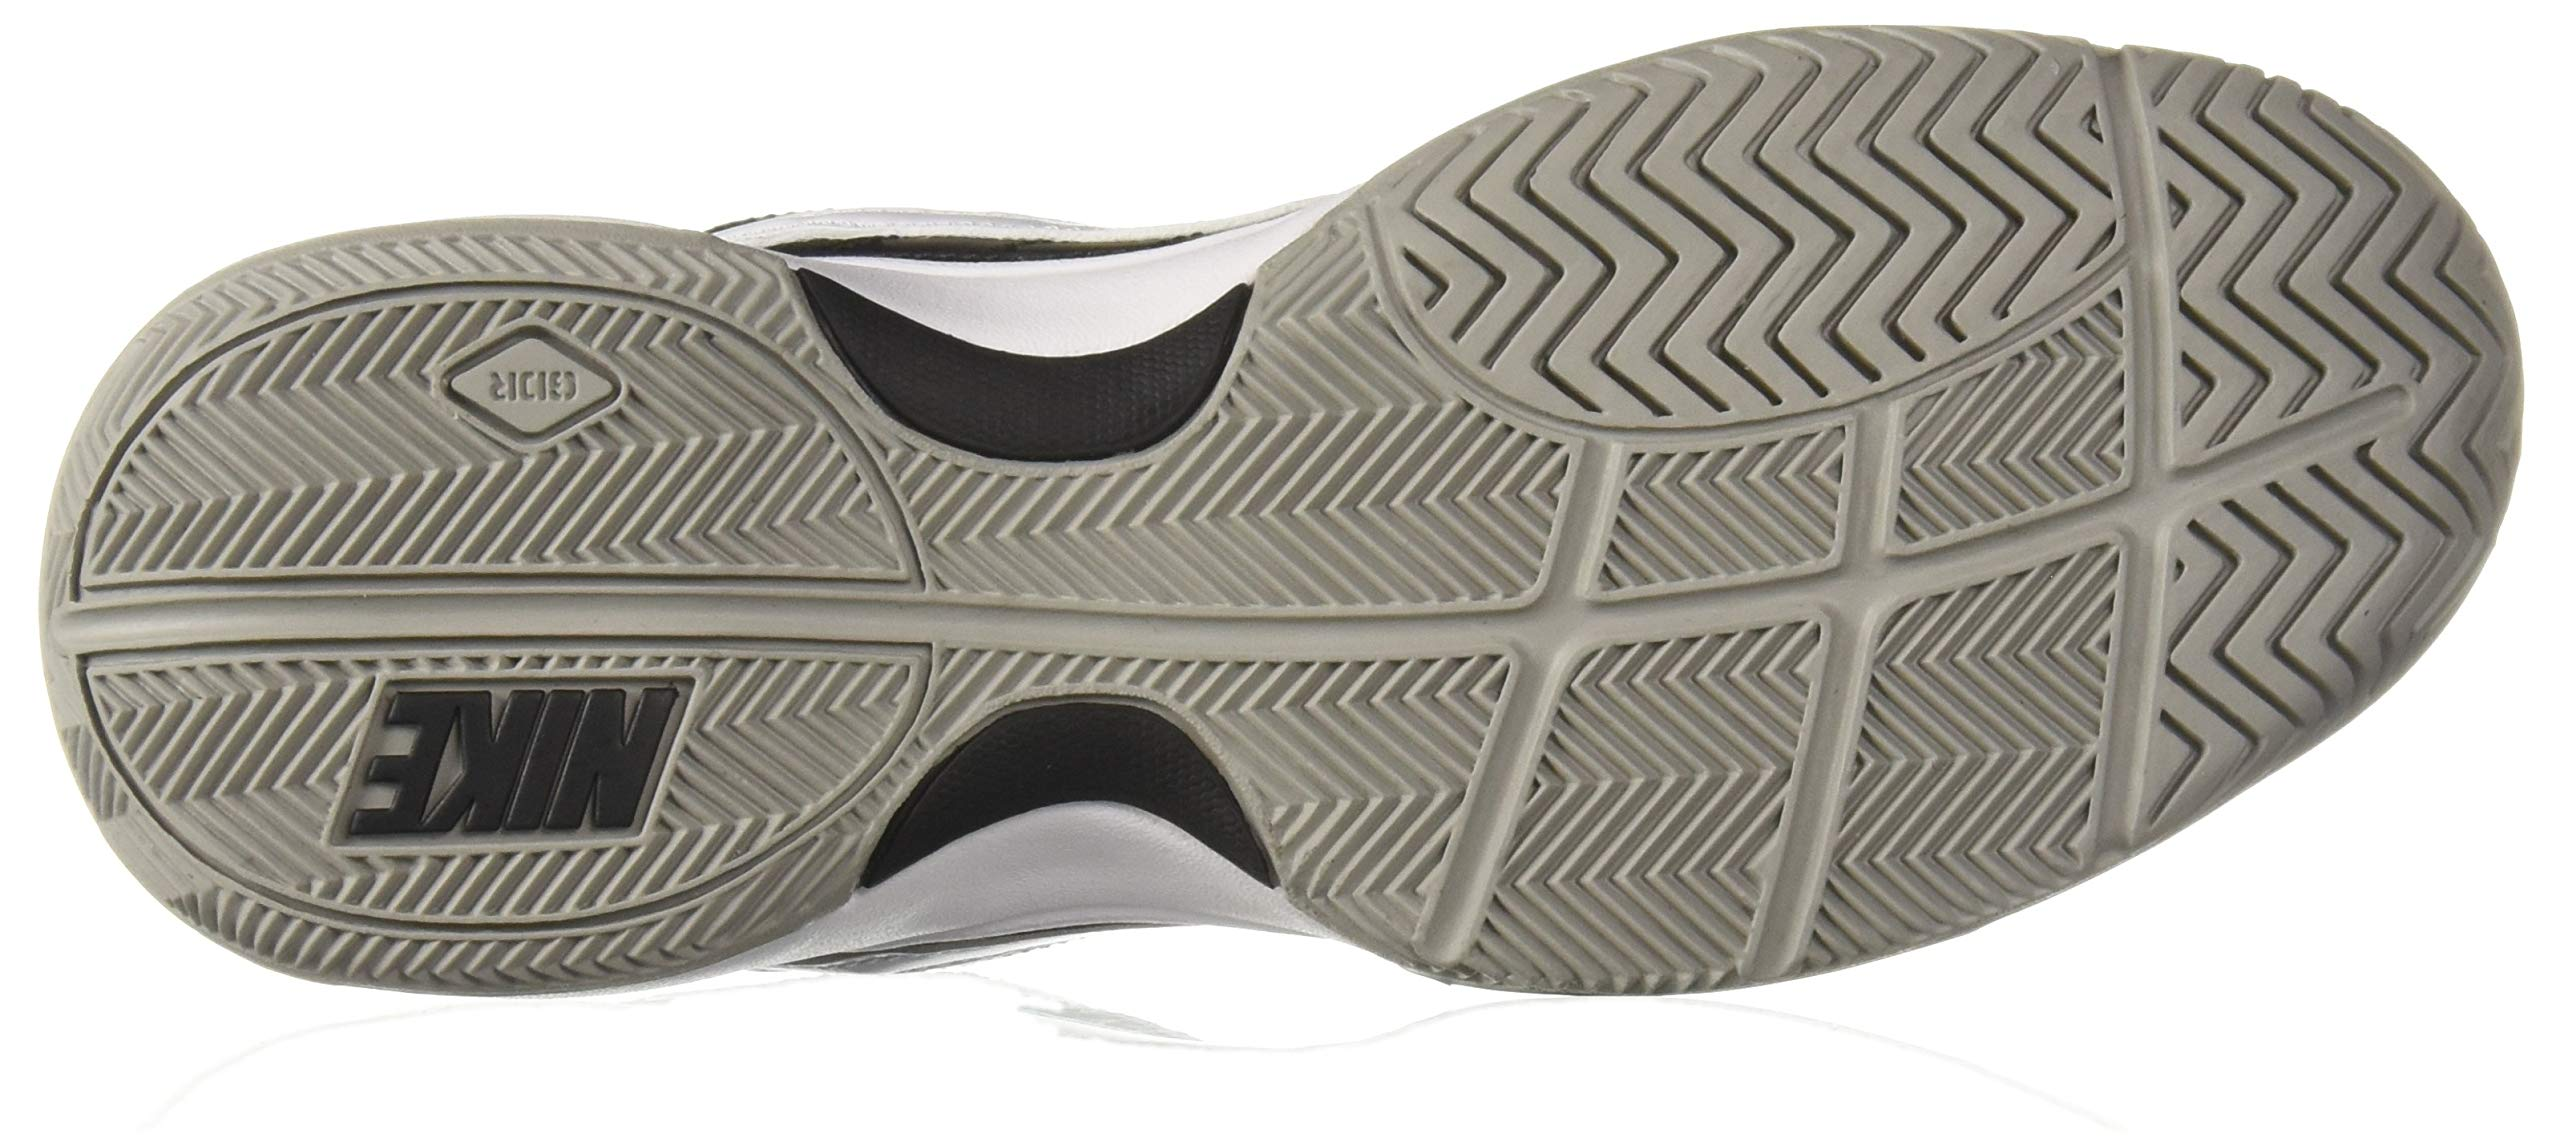 NIKE Men's Court Lite Athletic Shoe, Black/White/Medium Grey, 7.5 Regular US by Nike (Image #3)